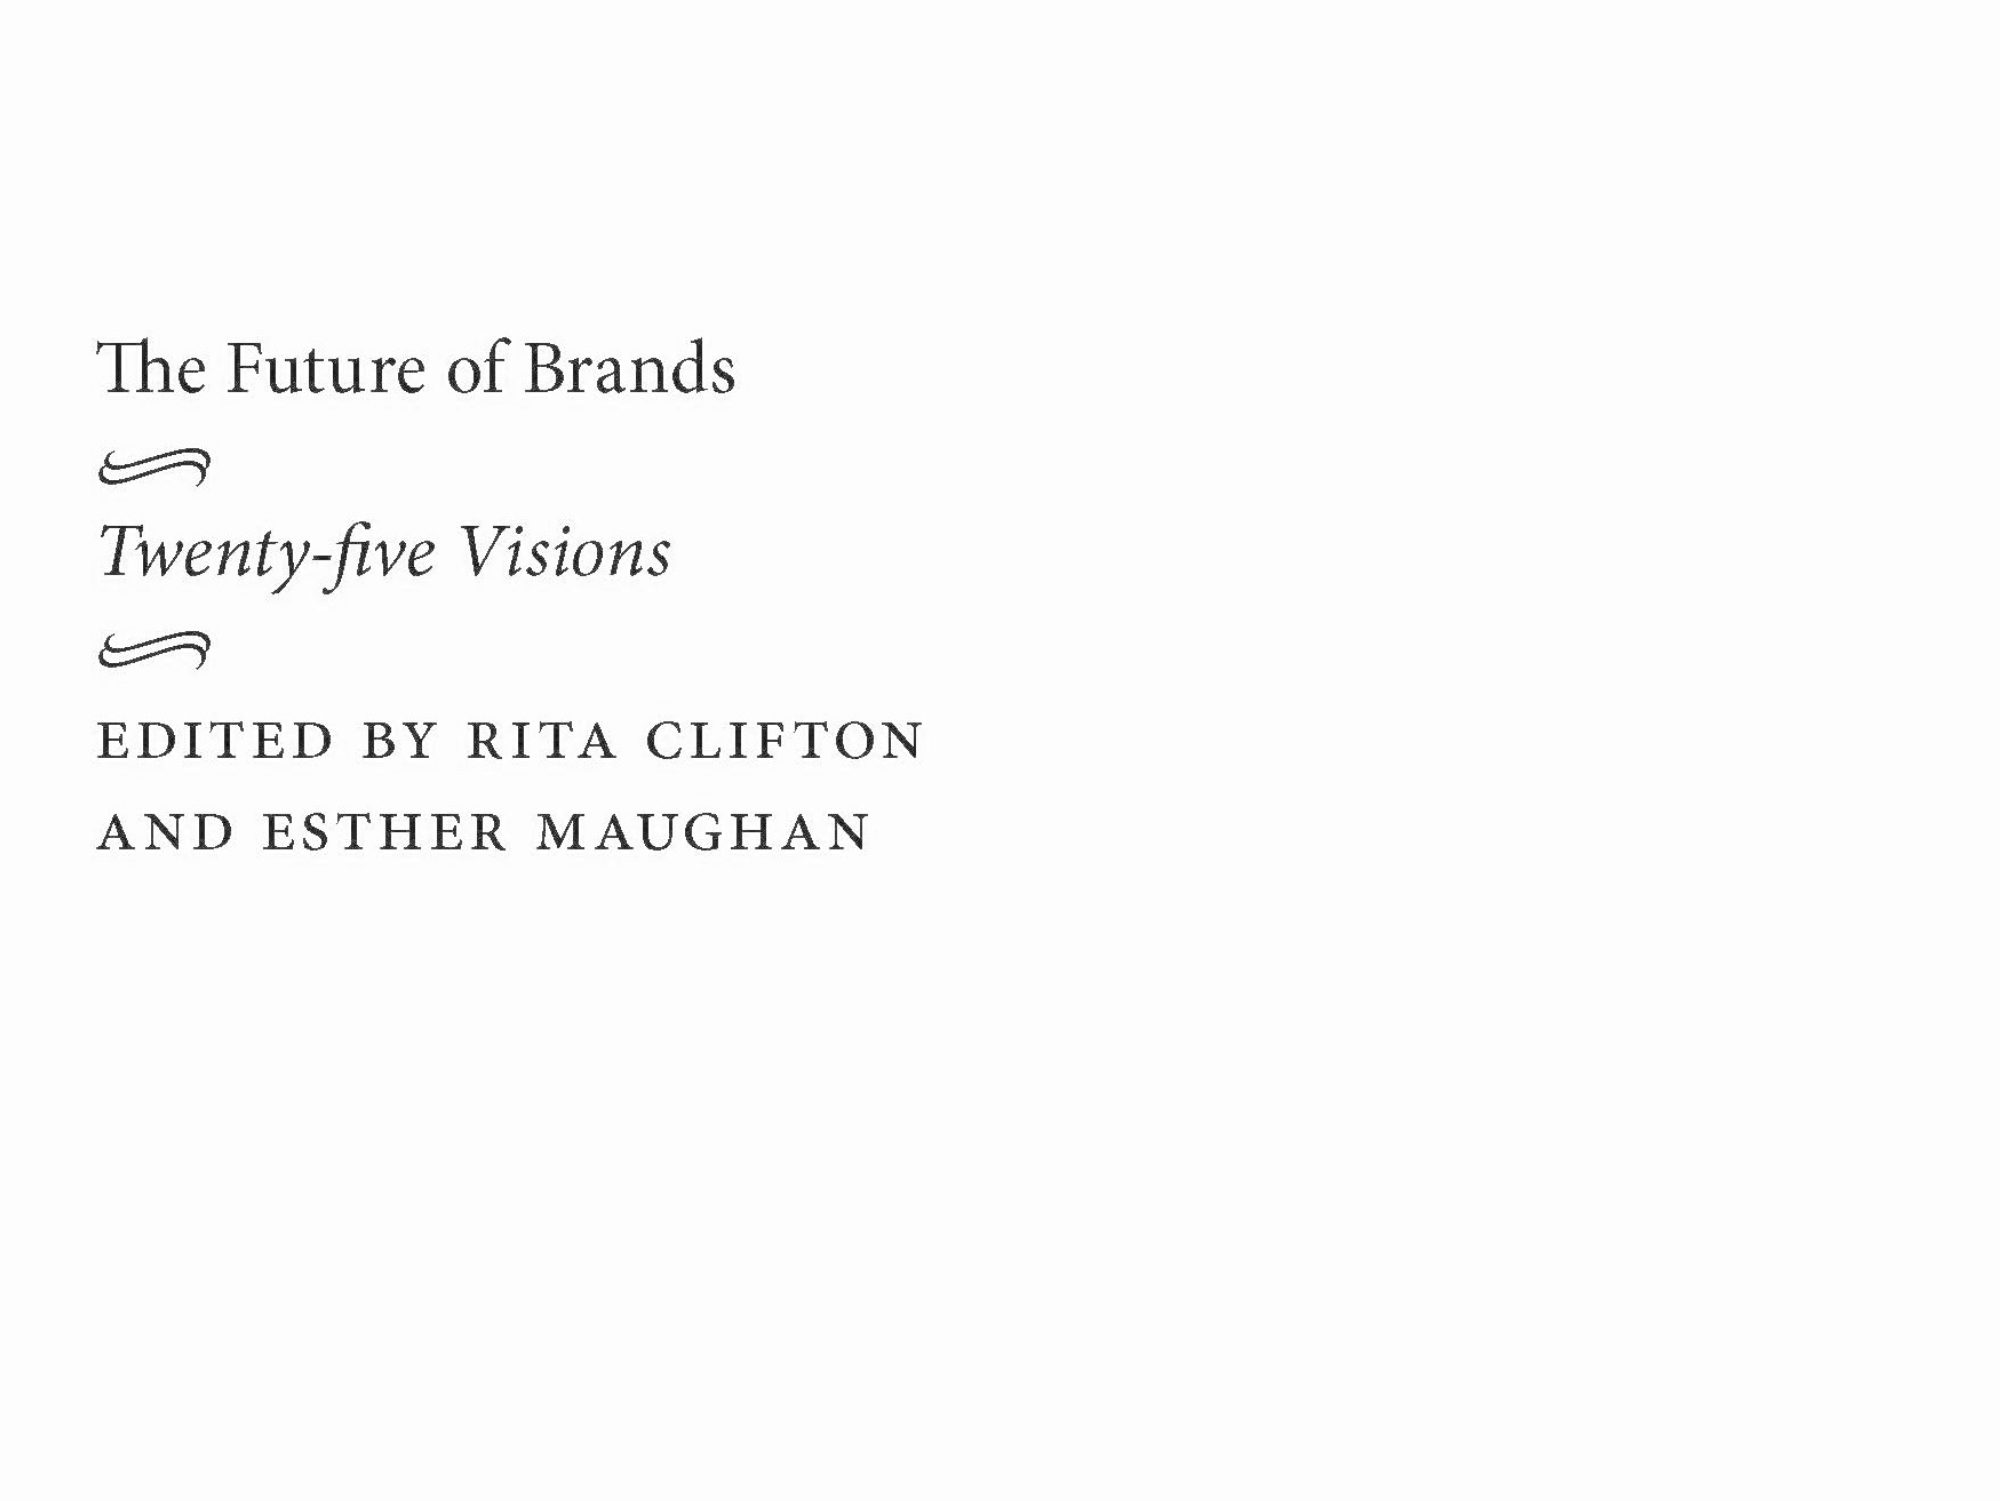 The future of brands cover inverted